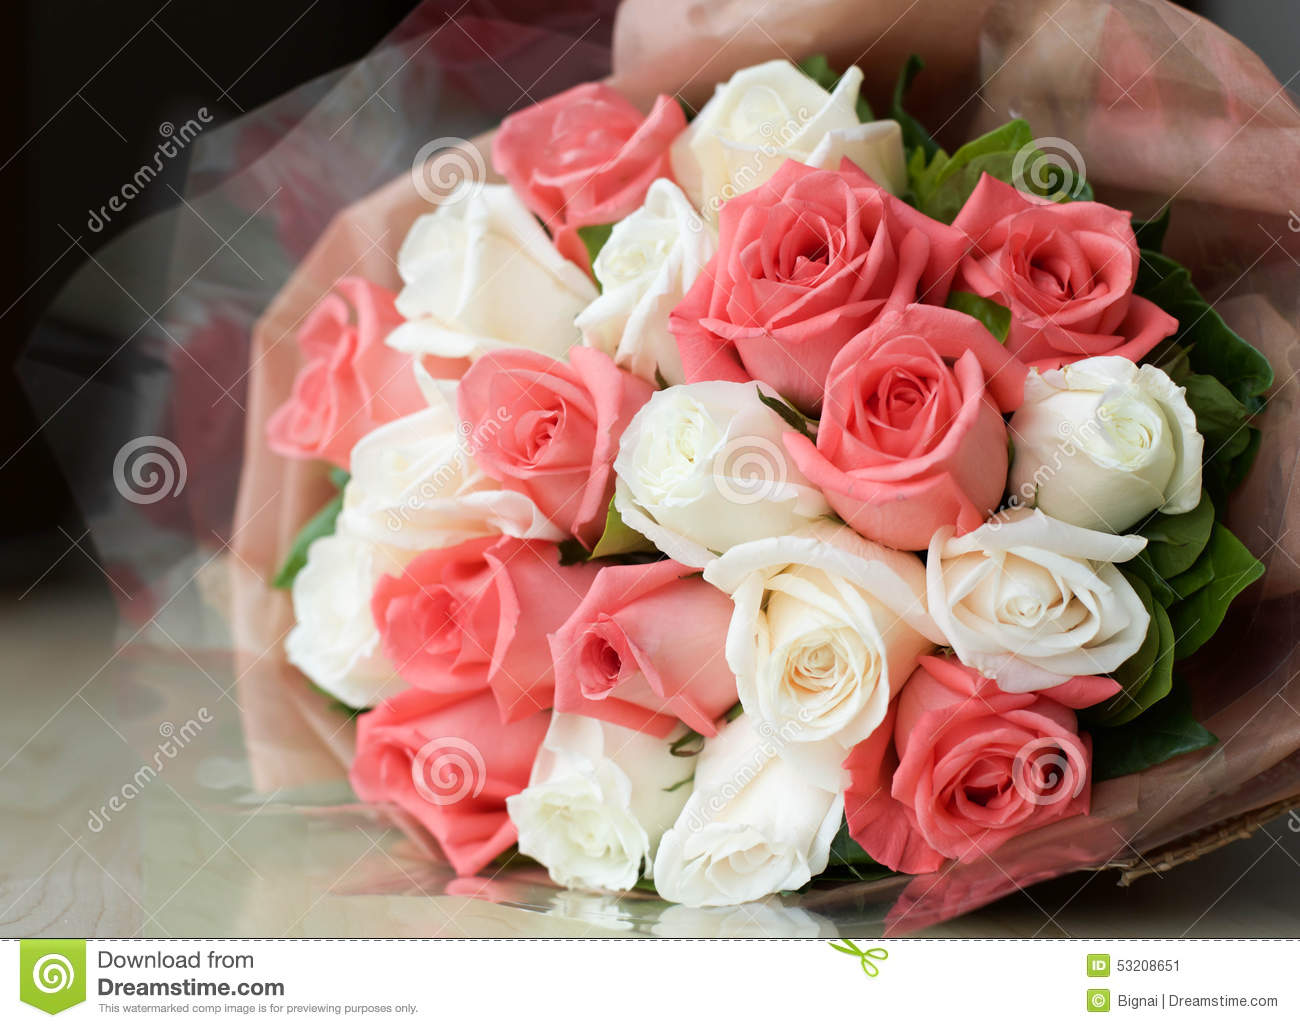 Bouquet pink and white roses flower stock image image of bloom bouquet pink and white roses flower bloom background izmirmasajfo Images